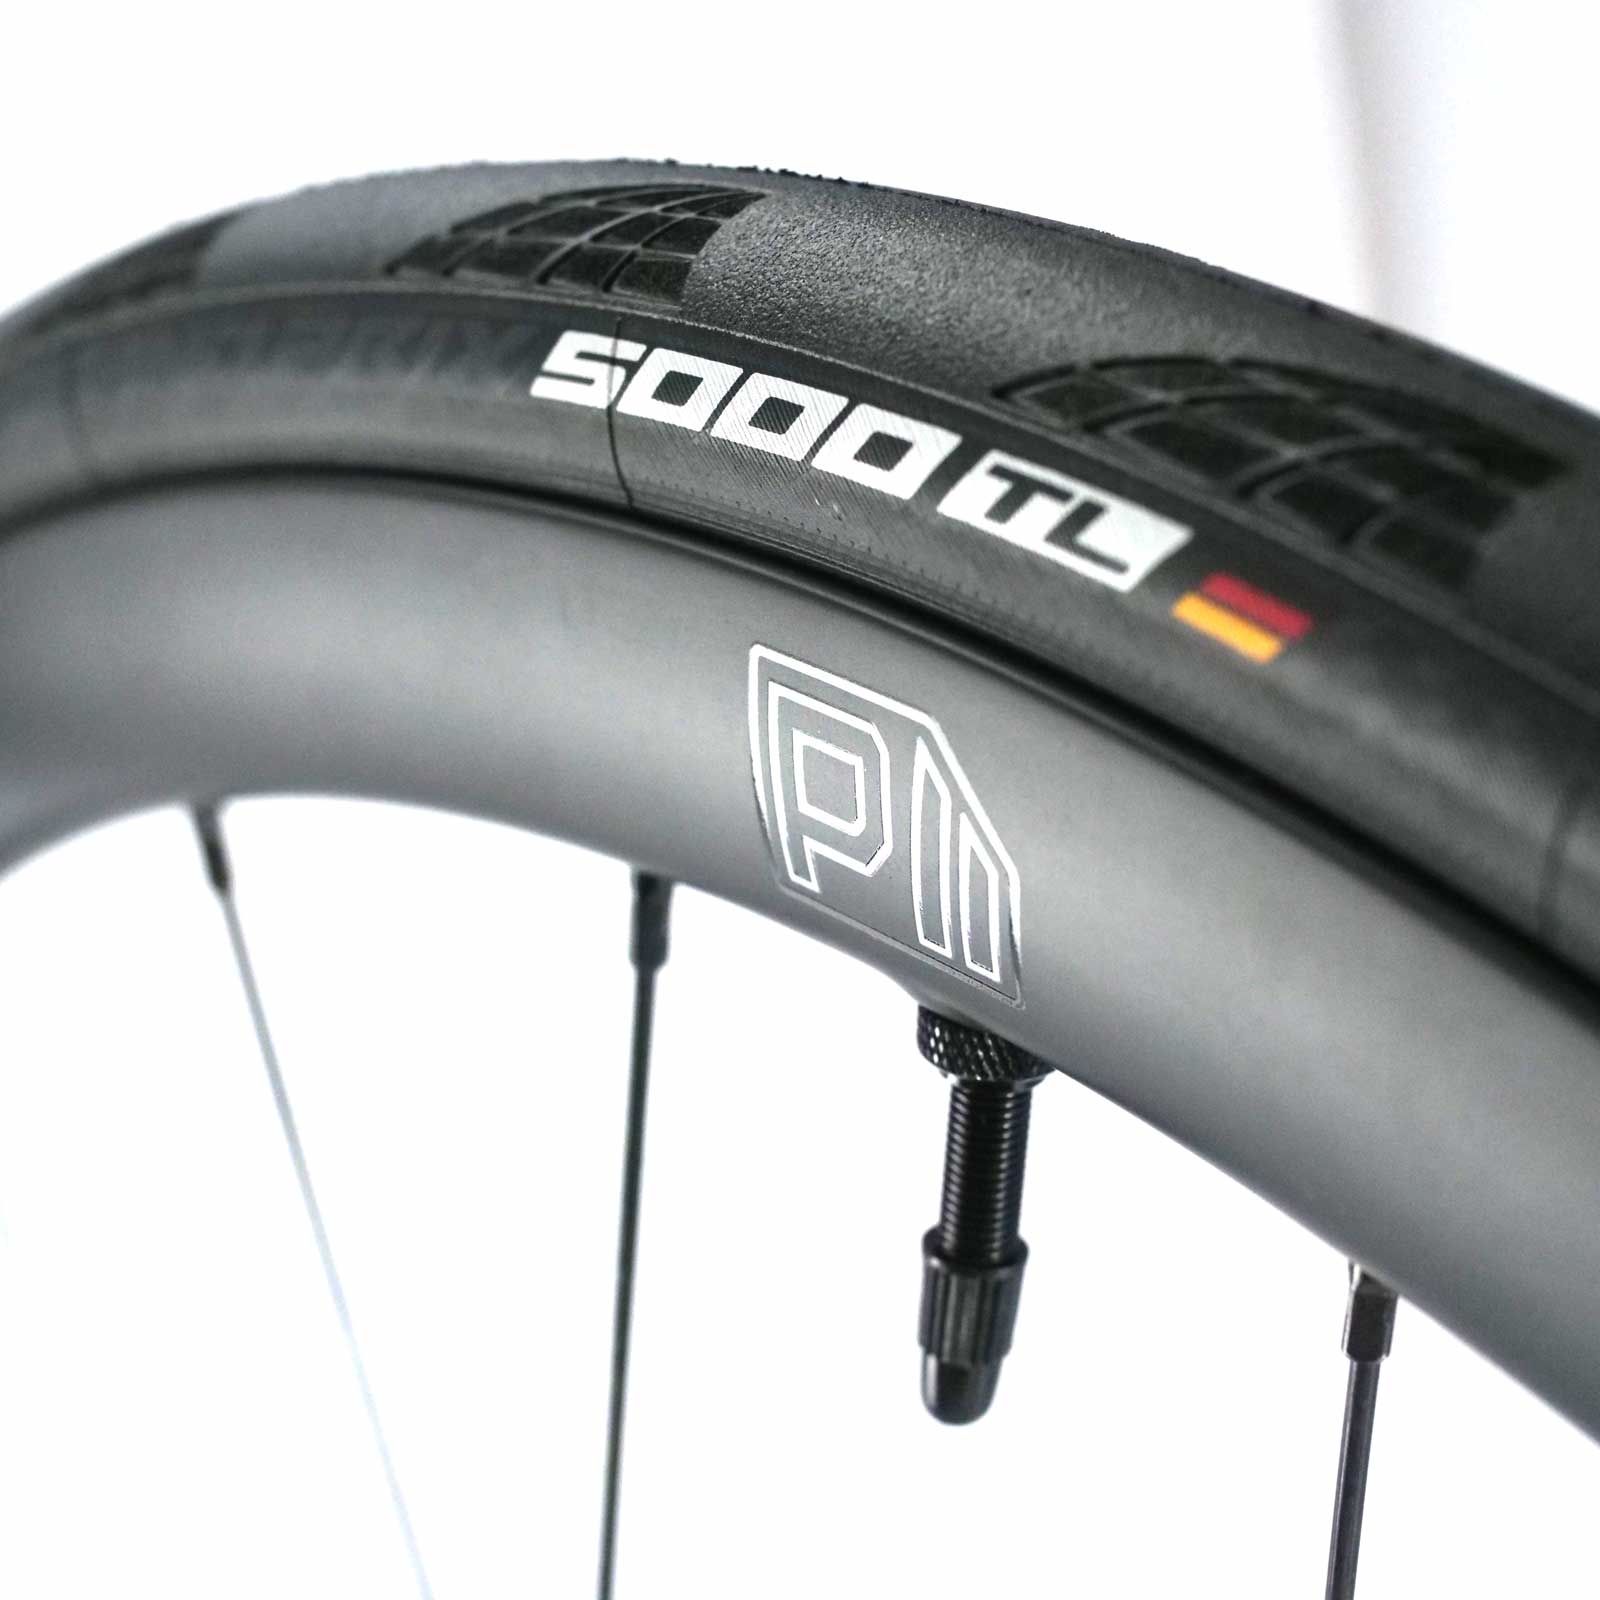 Continental GP5000 Tubeless tyres